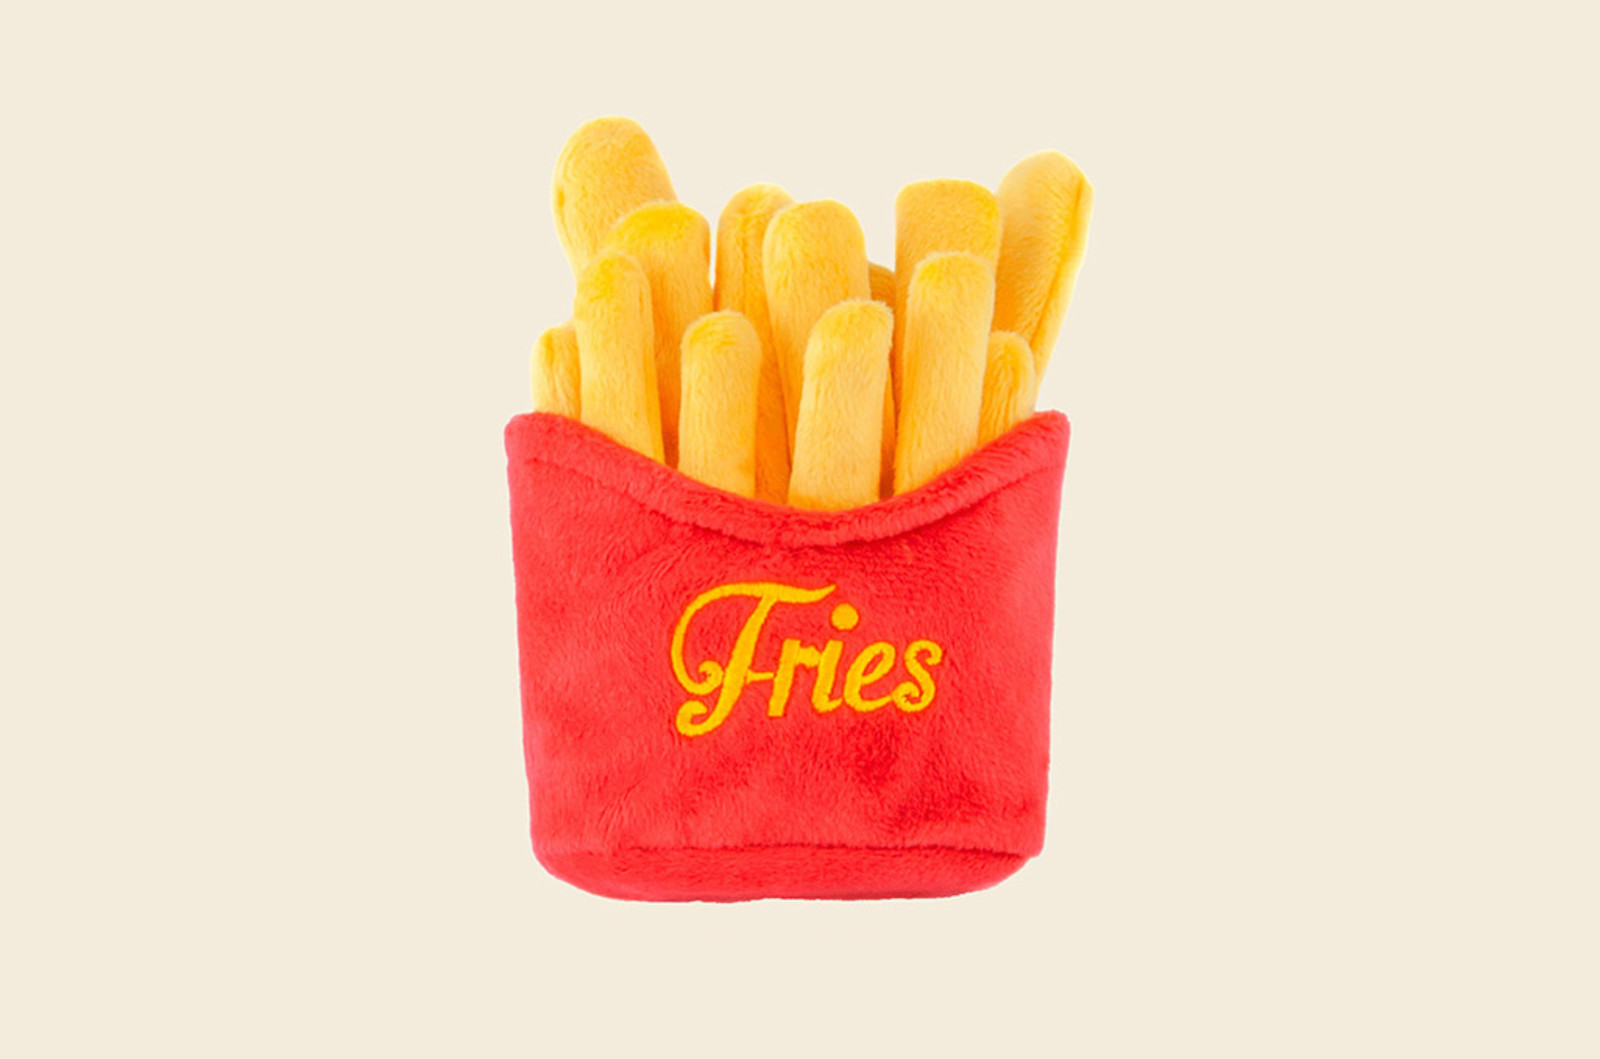 American Classic French Fries